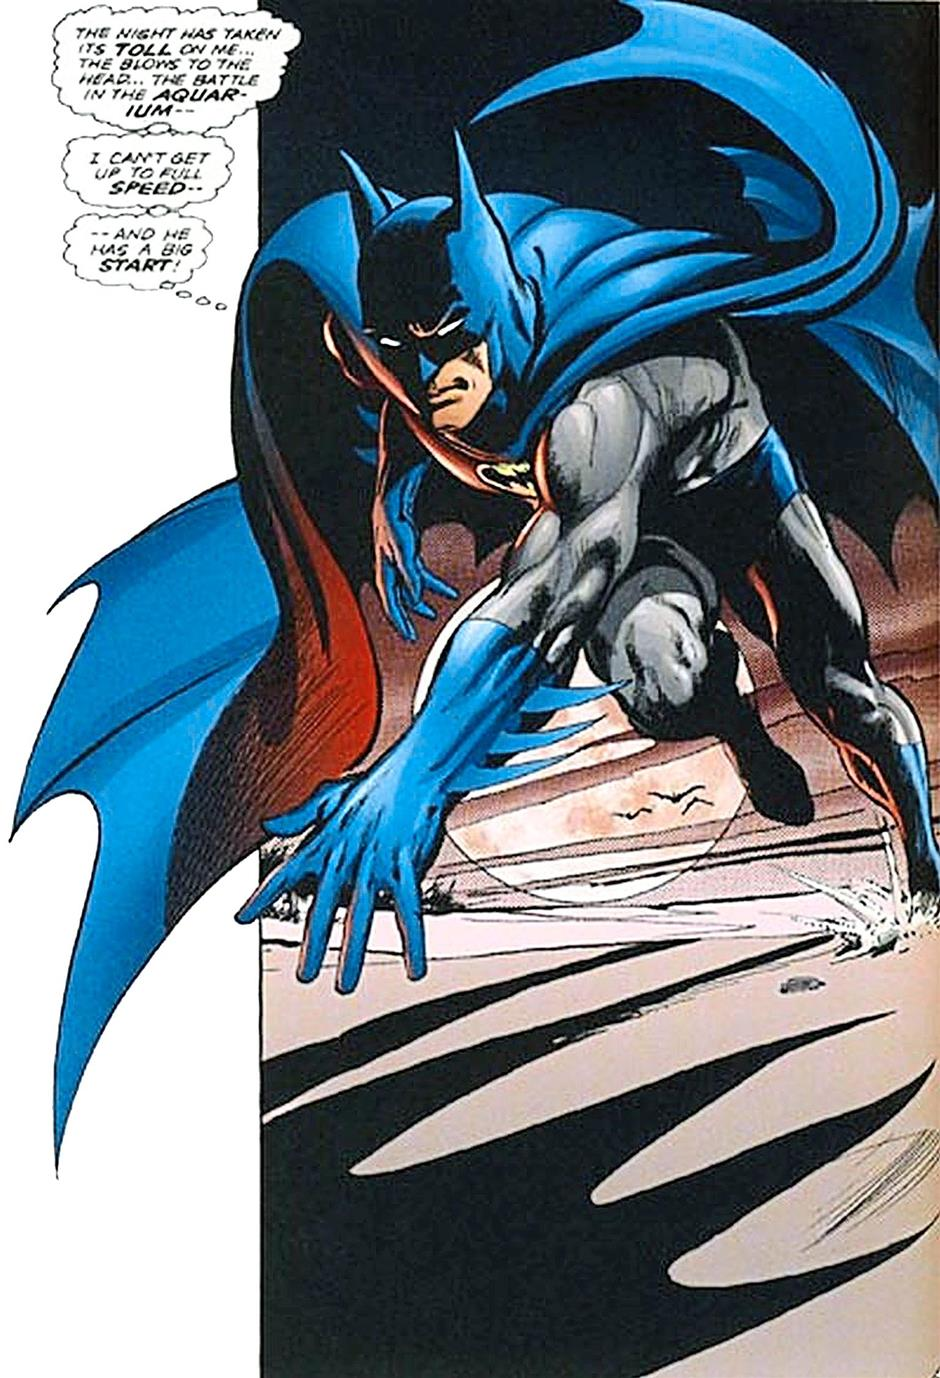 One of Batman's most iconic panels, drawn by Neal Adams for Batman: Son Of the Demon.